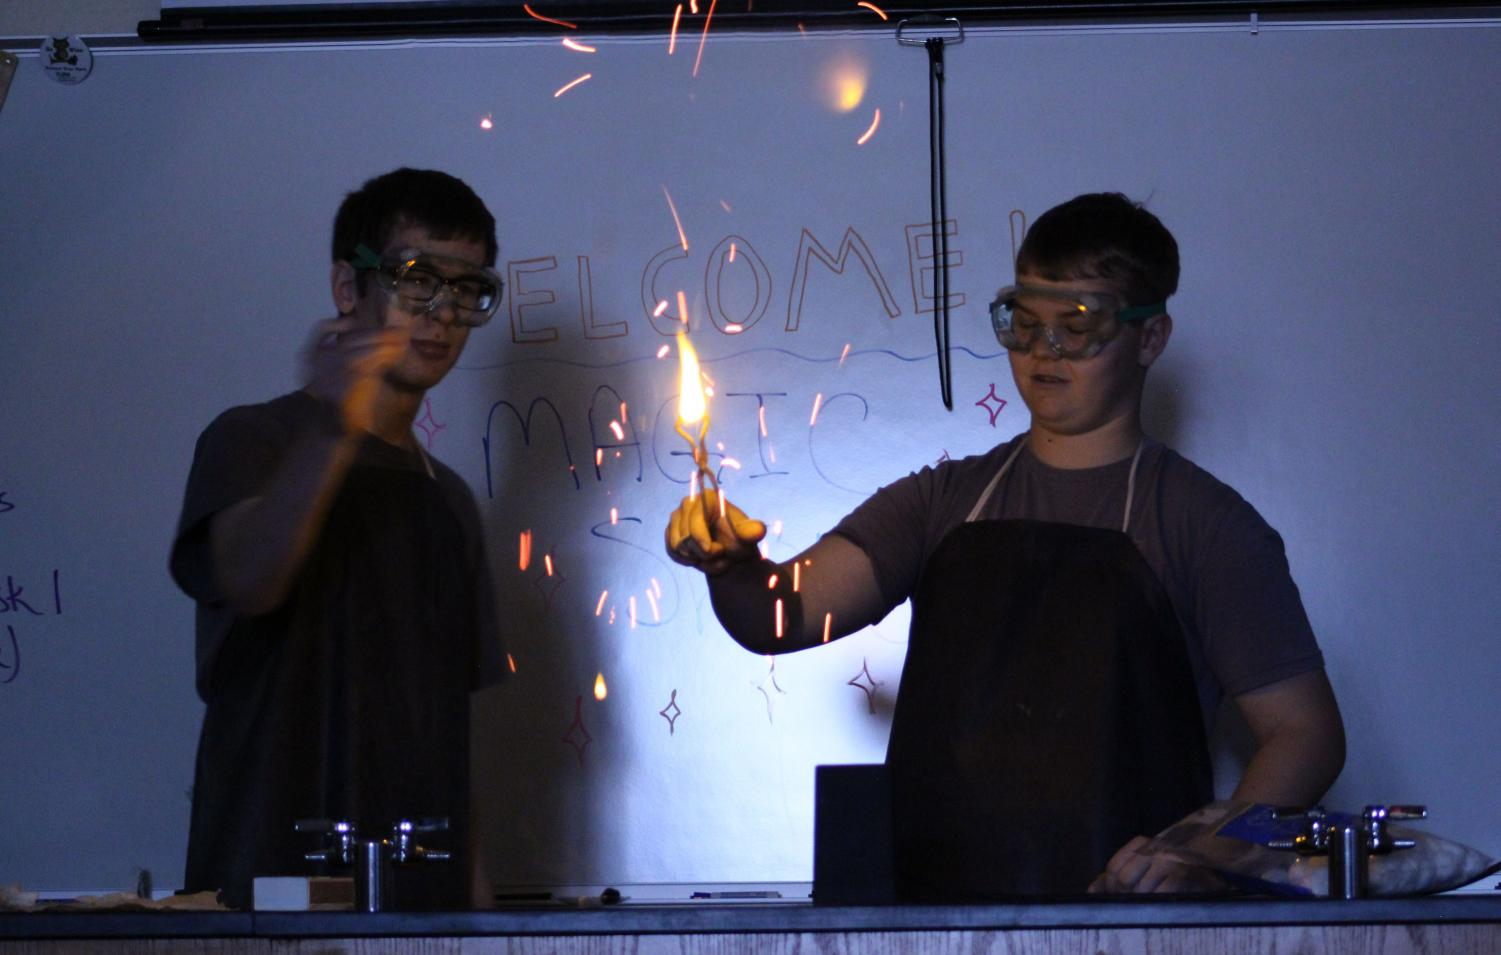 Advanced+chemistry+students+Josh+Woodsmall+%2811%29+and+Calvin+Spellman+%2811%29+join+together+to+spark+up+the+room+with+their+experiment+for+elementary+students.+They+had++worked+on+their+experimentation+all+semester.+